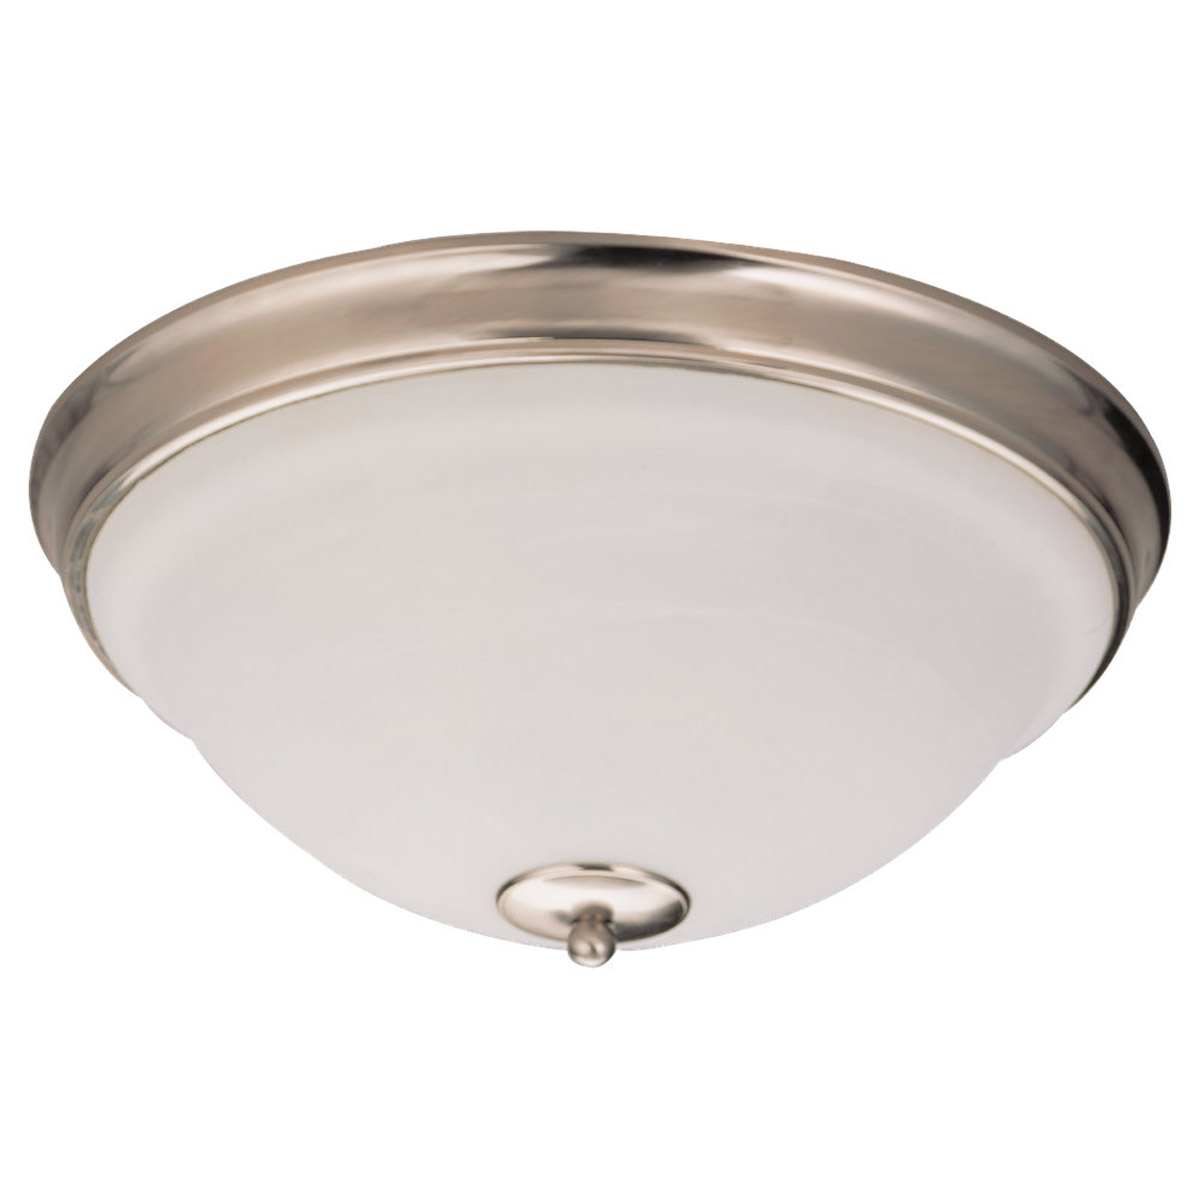 Sea Gull Lighting Serenity 3 Light Flush Mount in Brushed Nickel 75190-962 photo